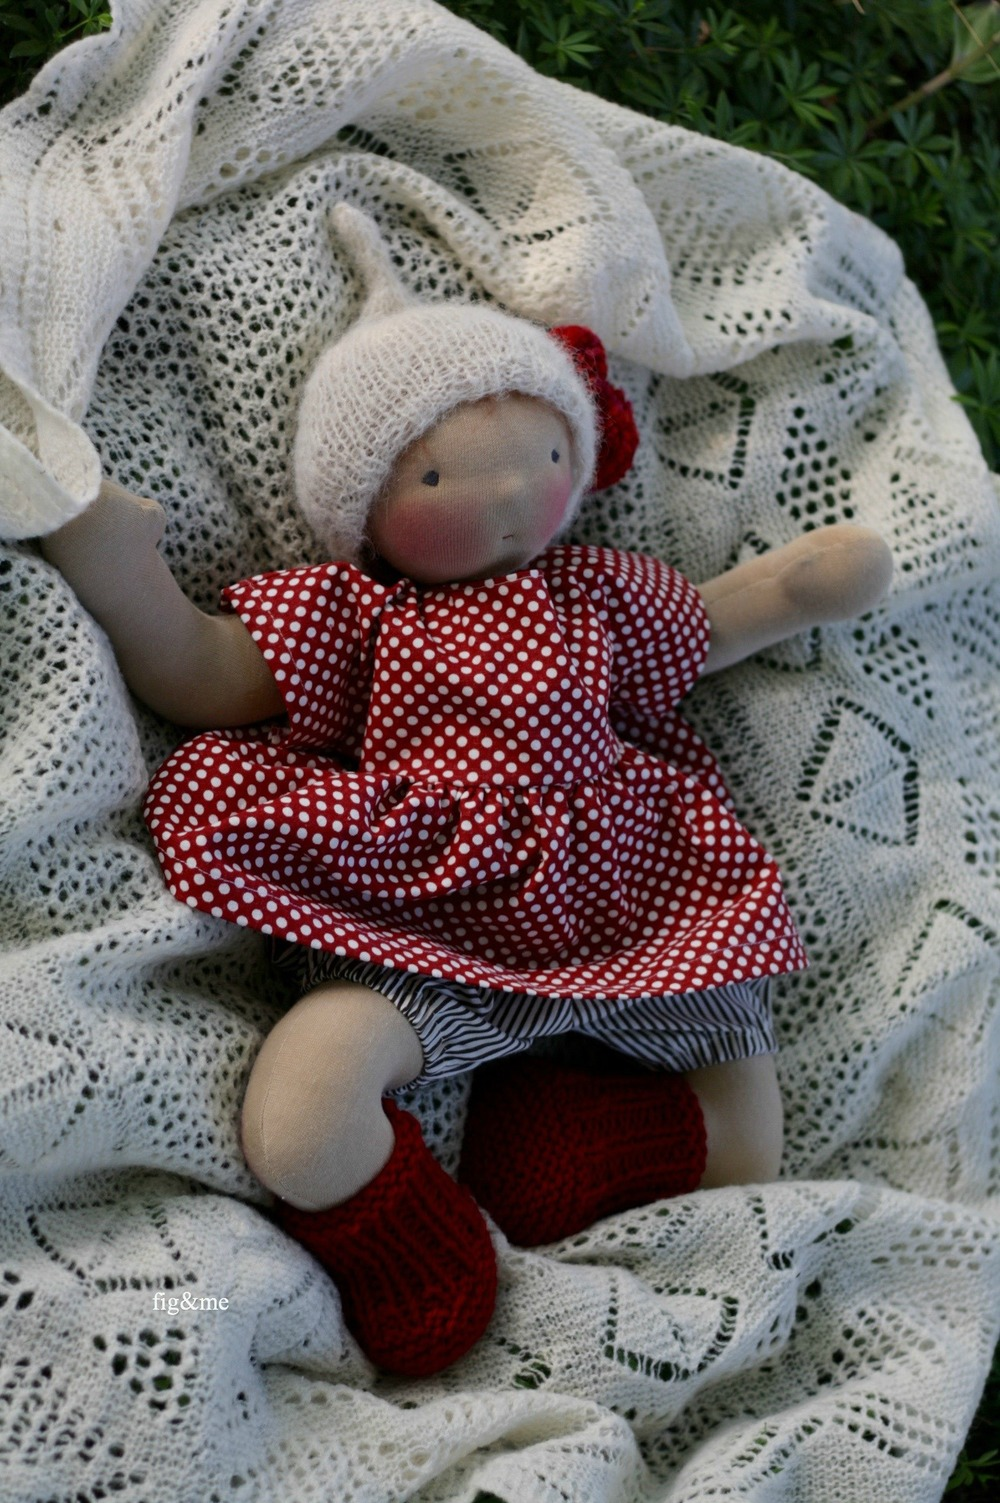 Rowanberry, a natural baby doll by Fig&me.